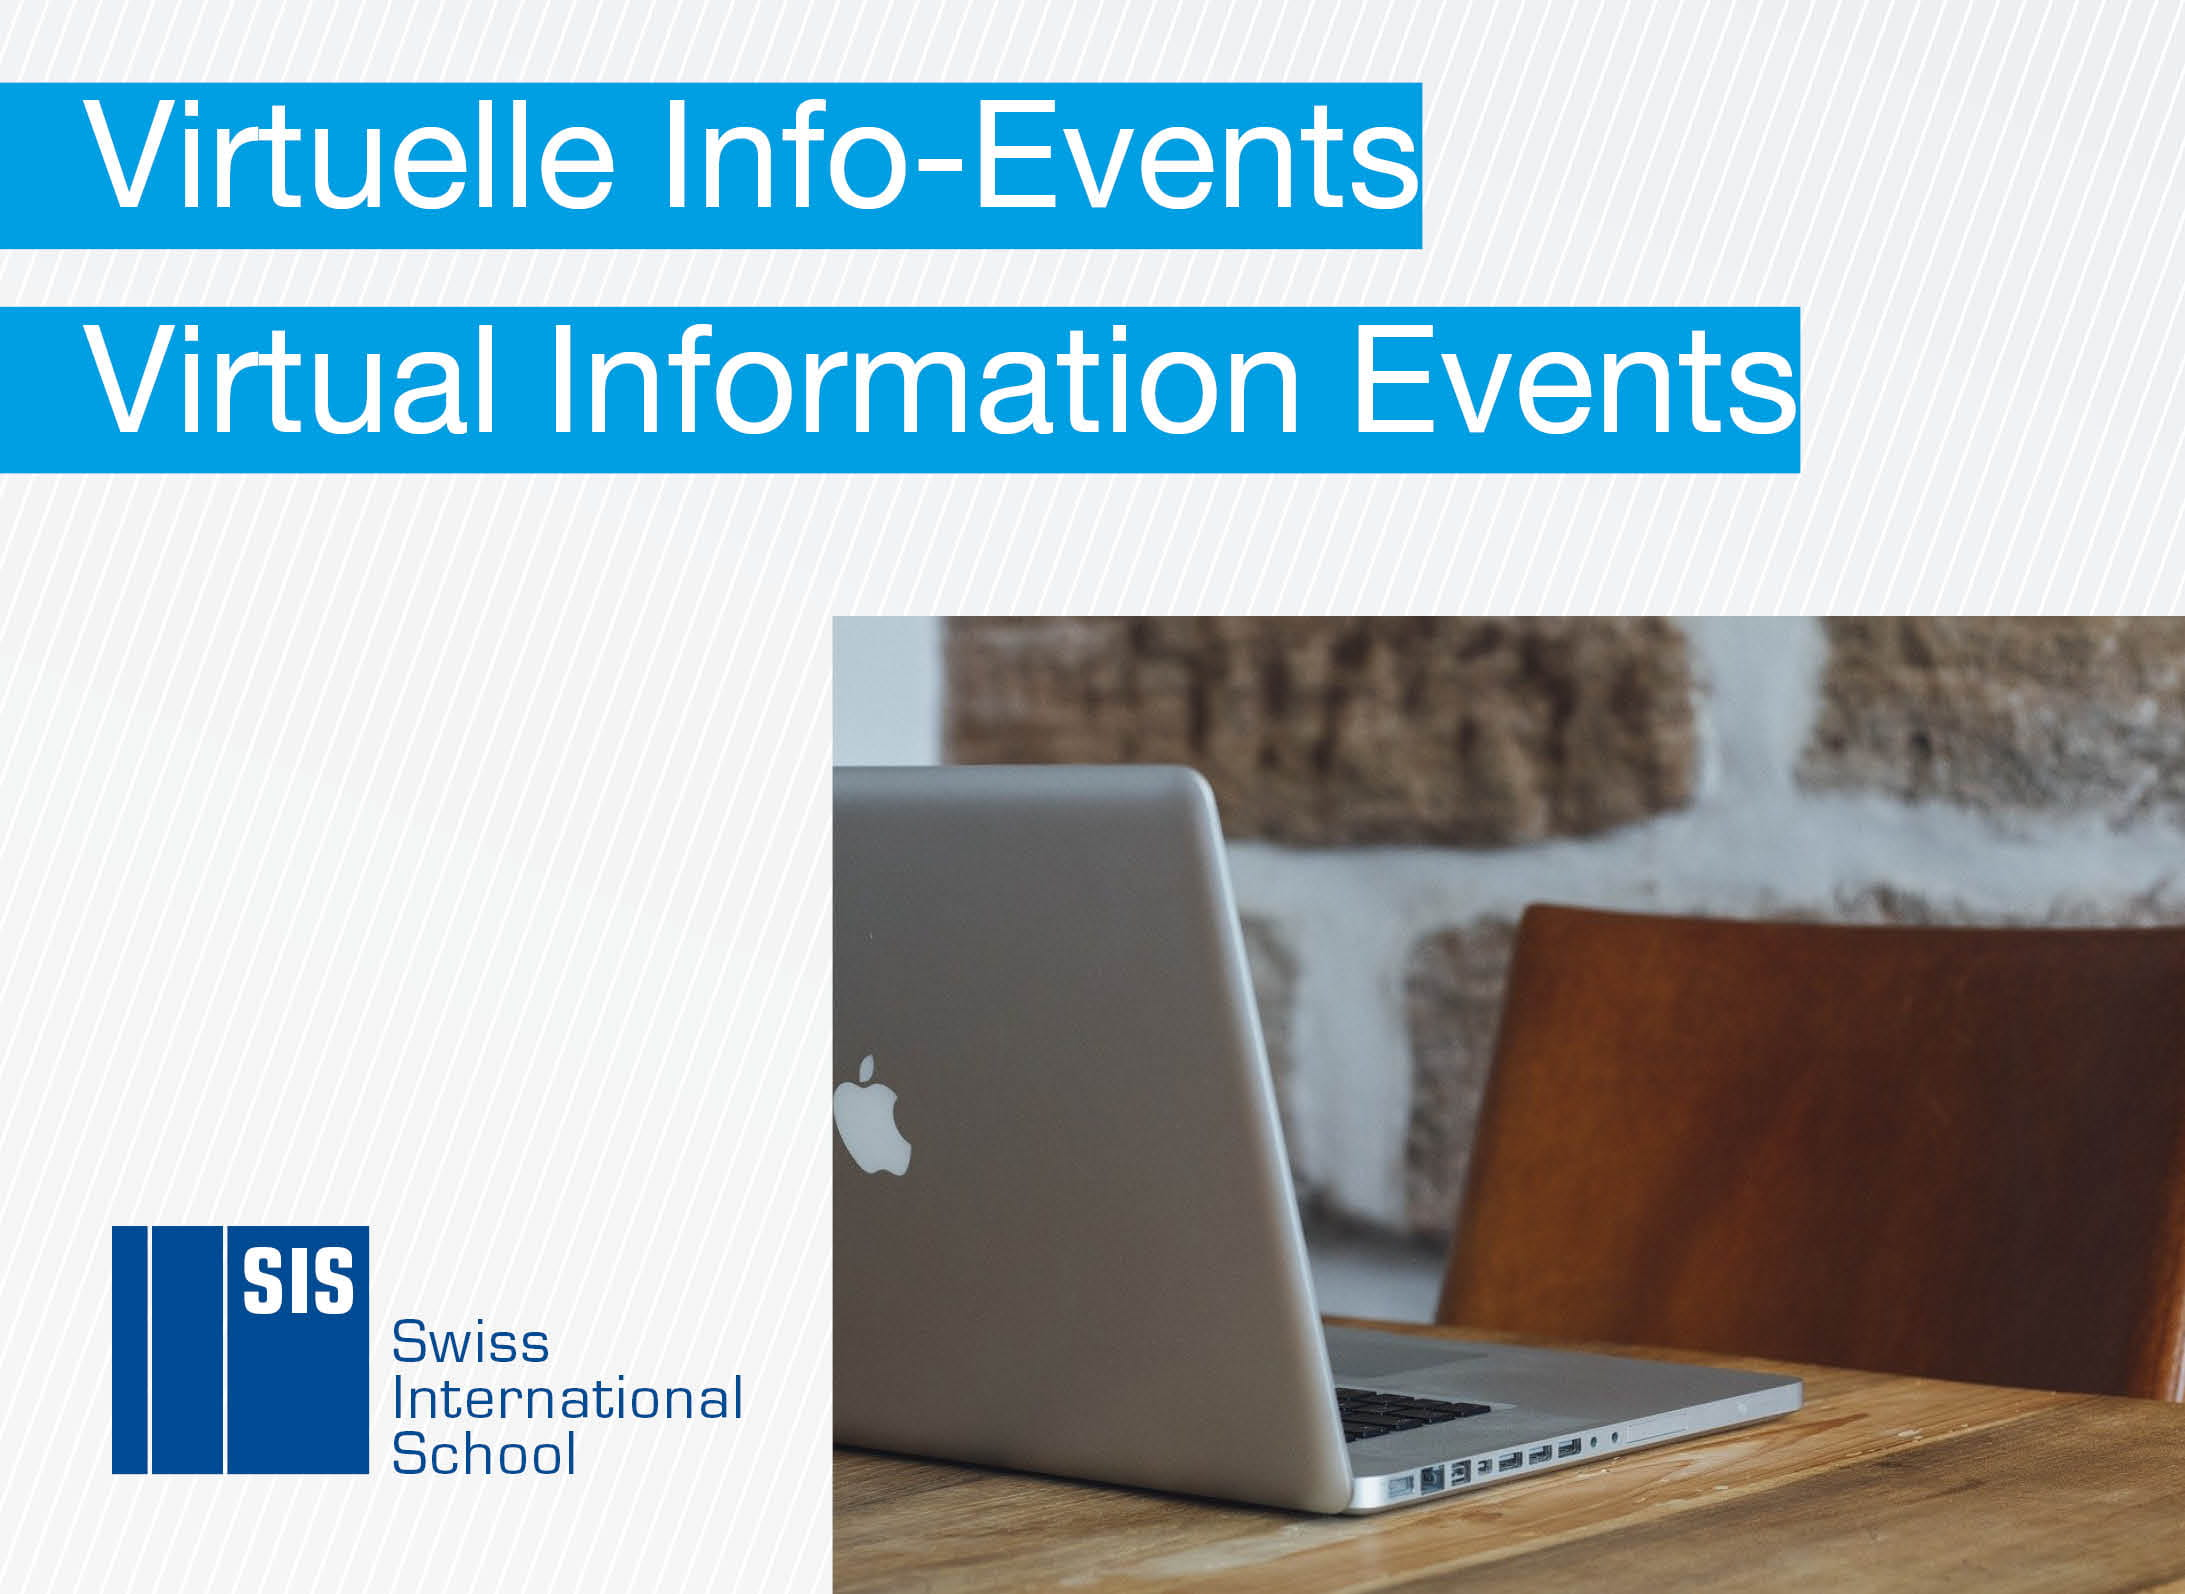 Virtuelle Info-Events